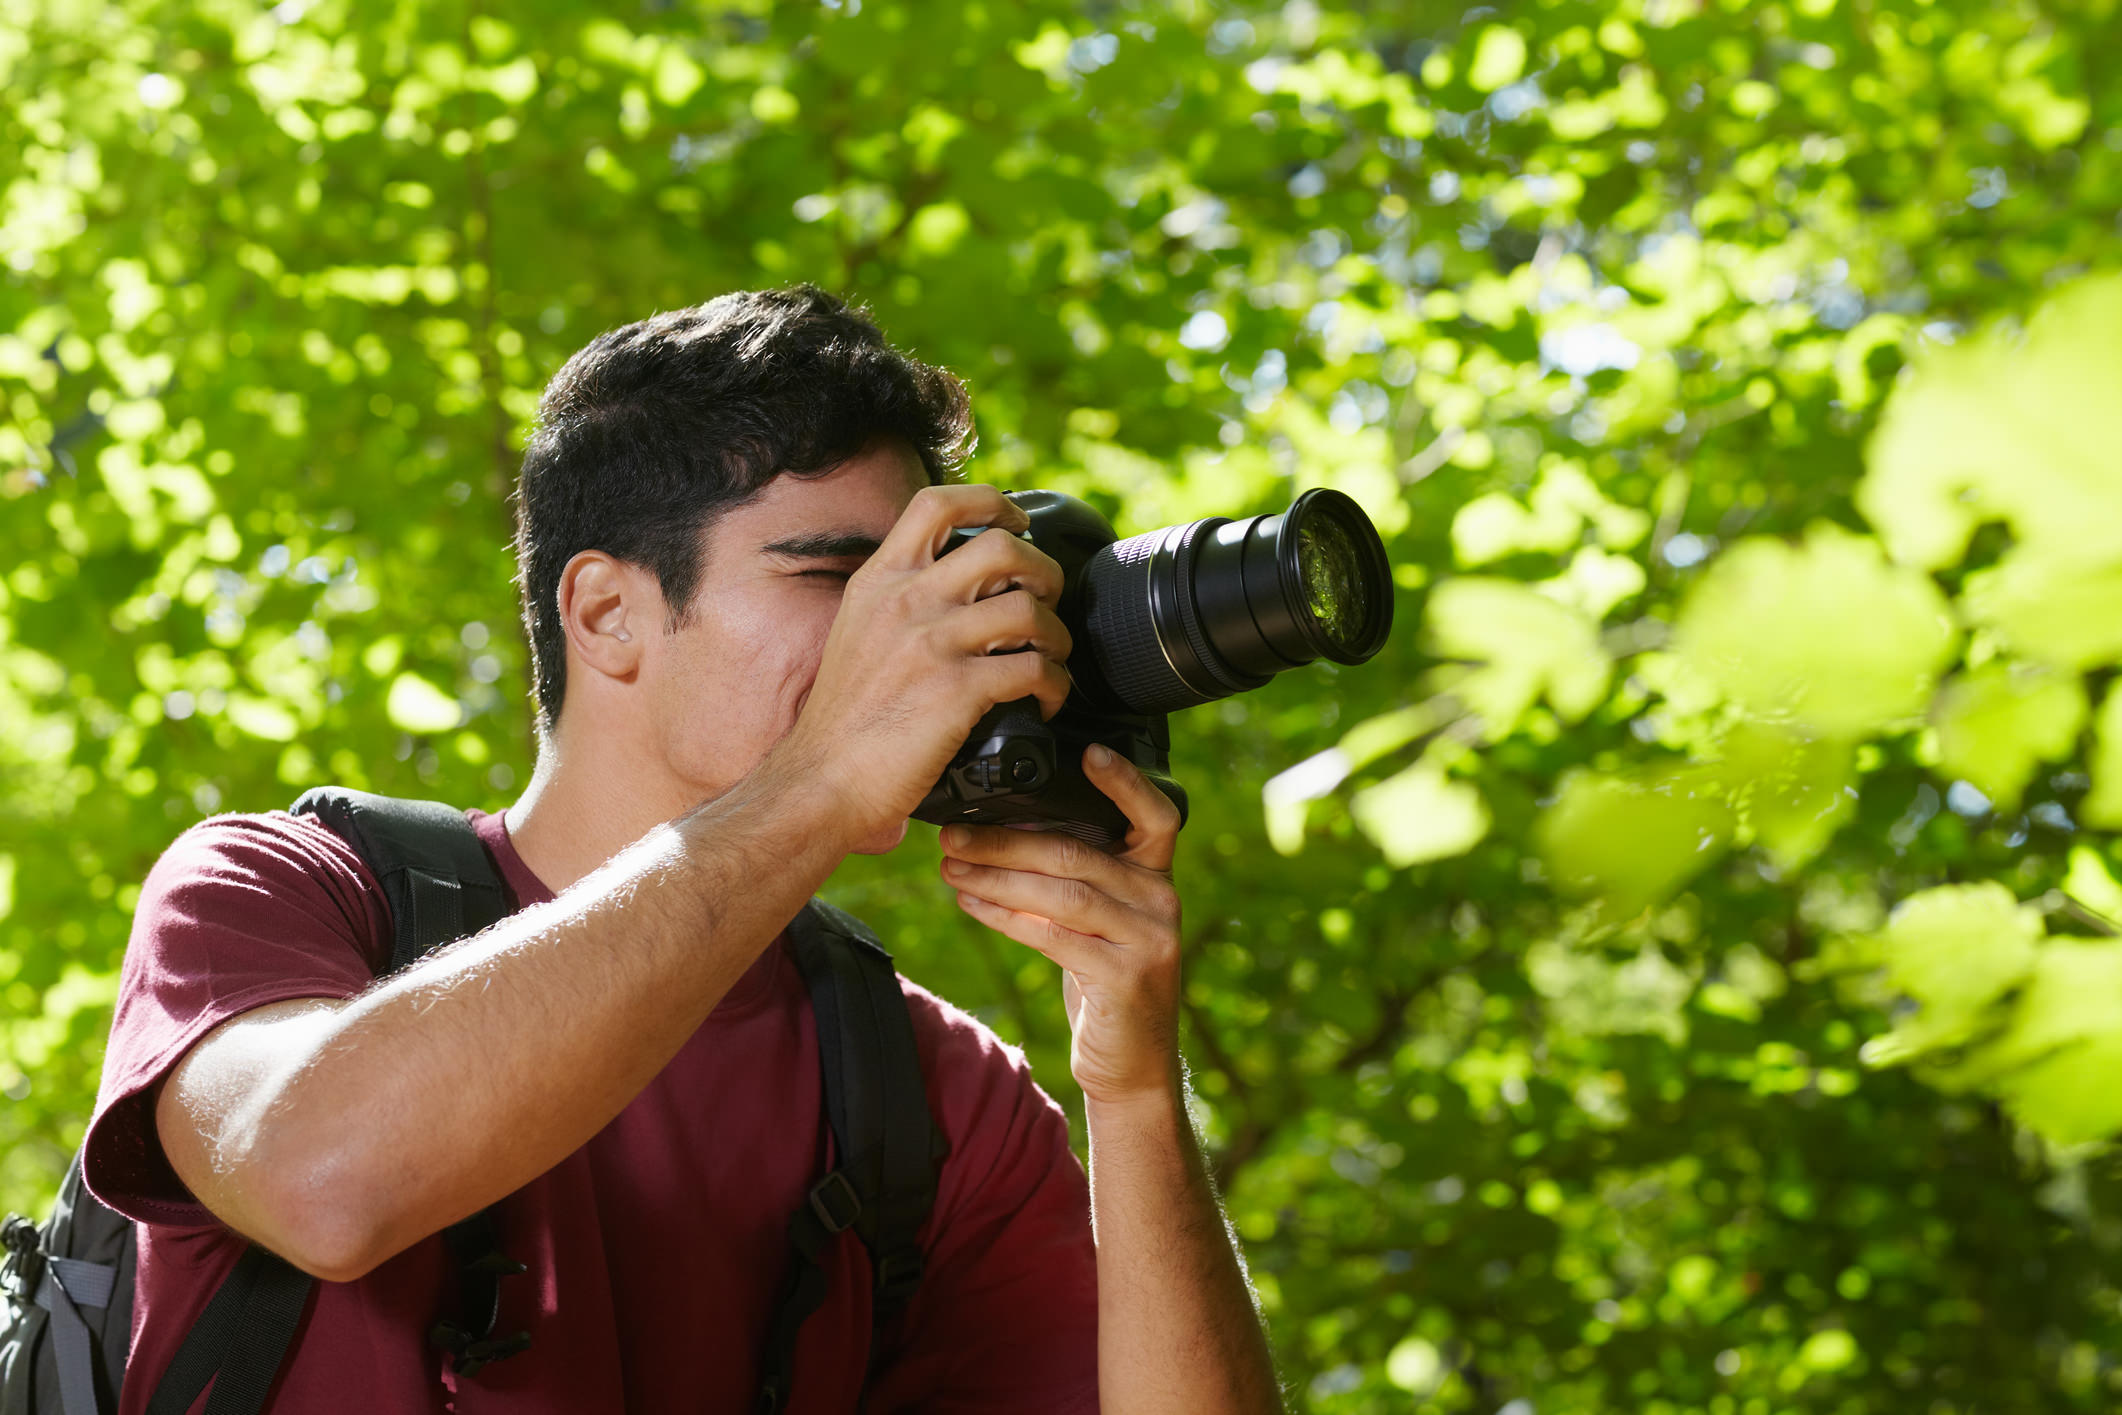 Man with camera image